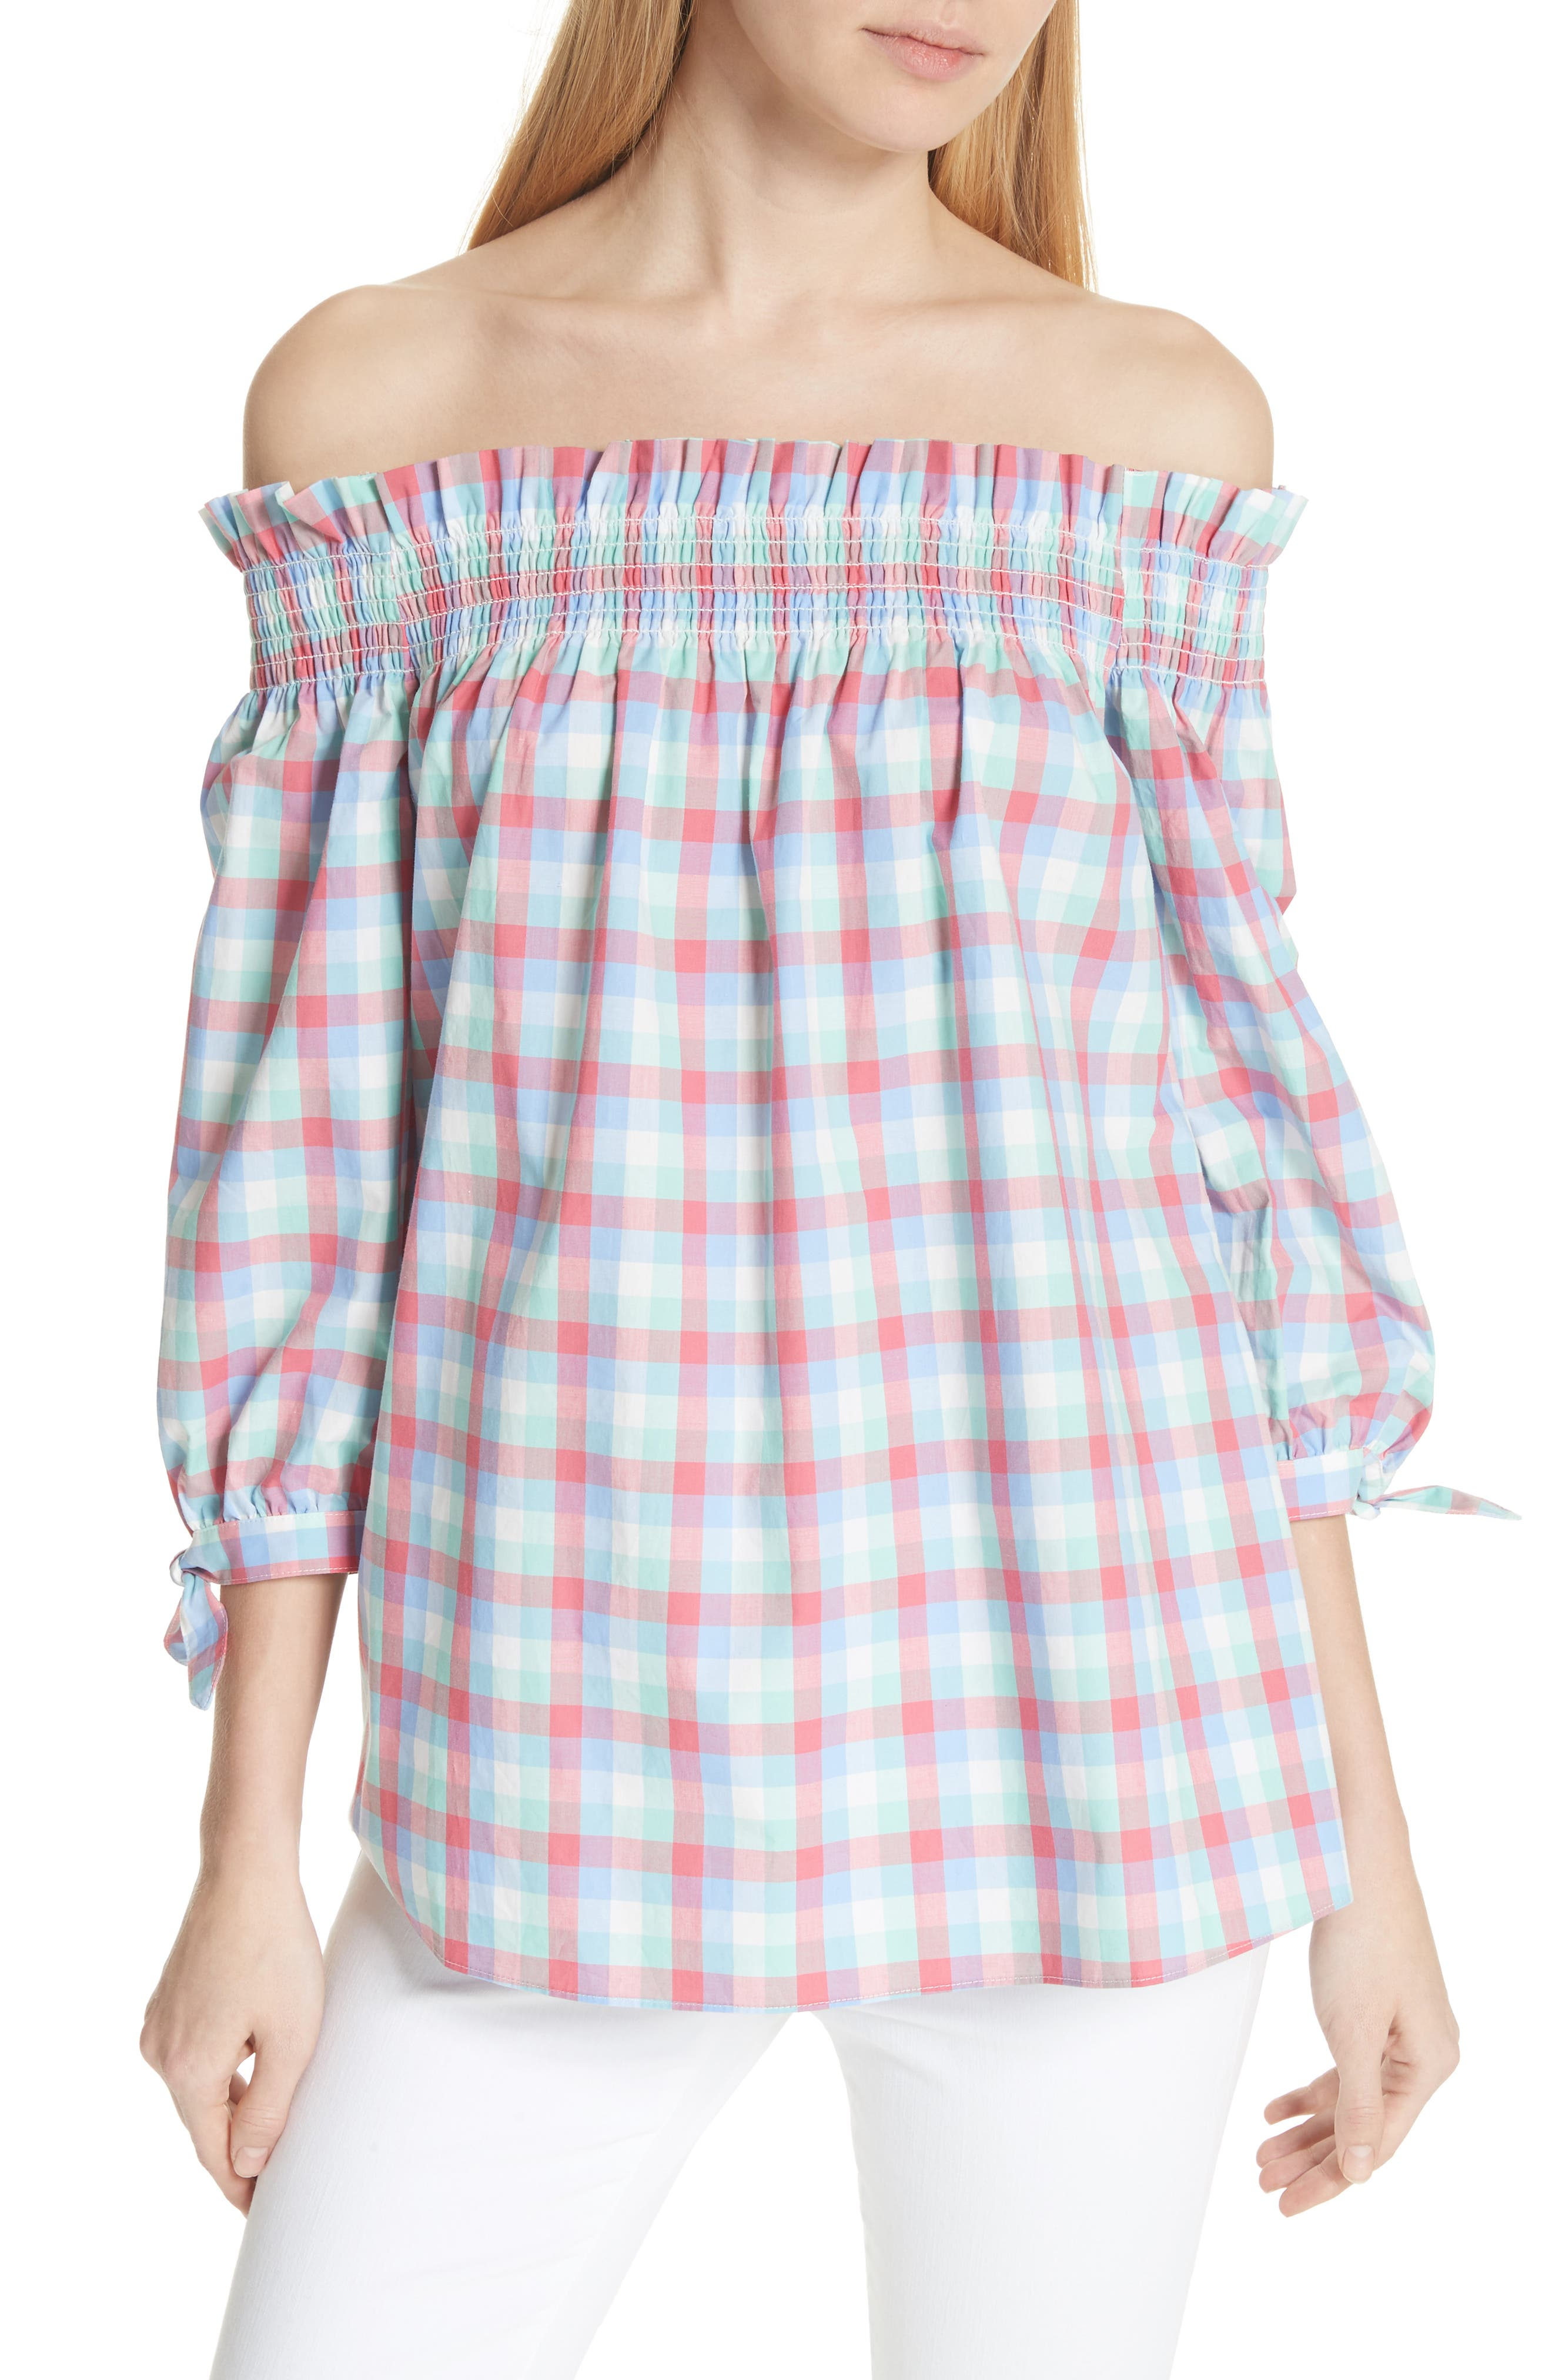 off the shoulder madras top,                             Main thumbnail 1, color,                             674